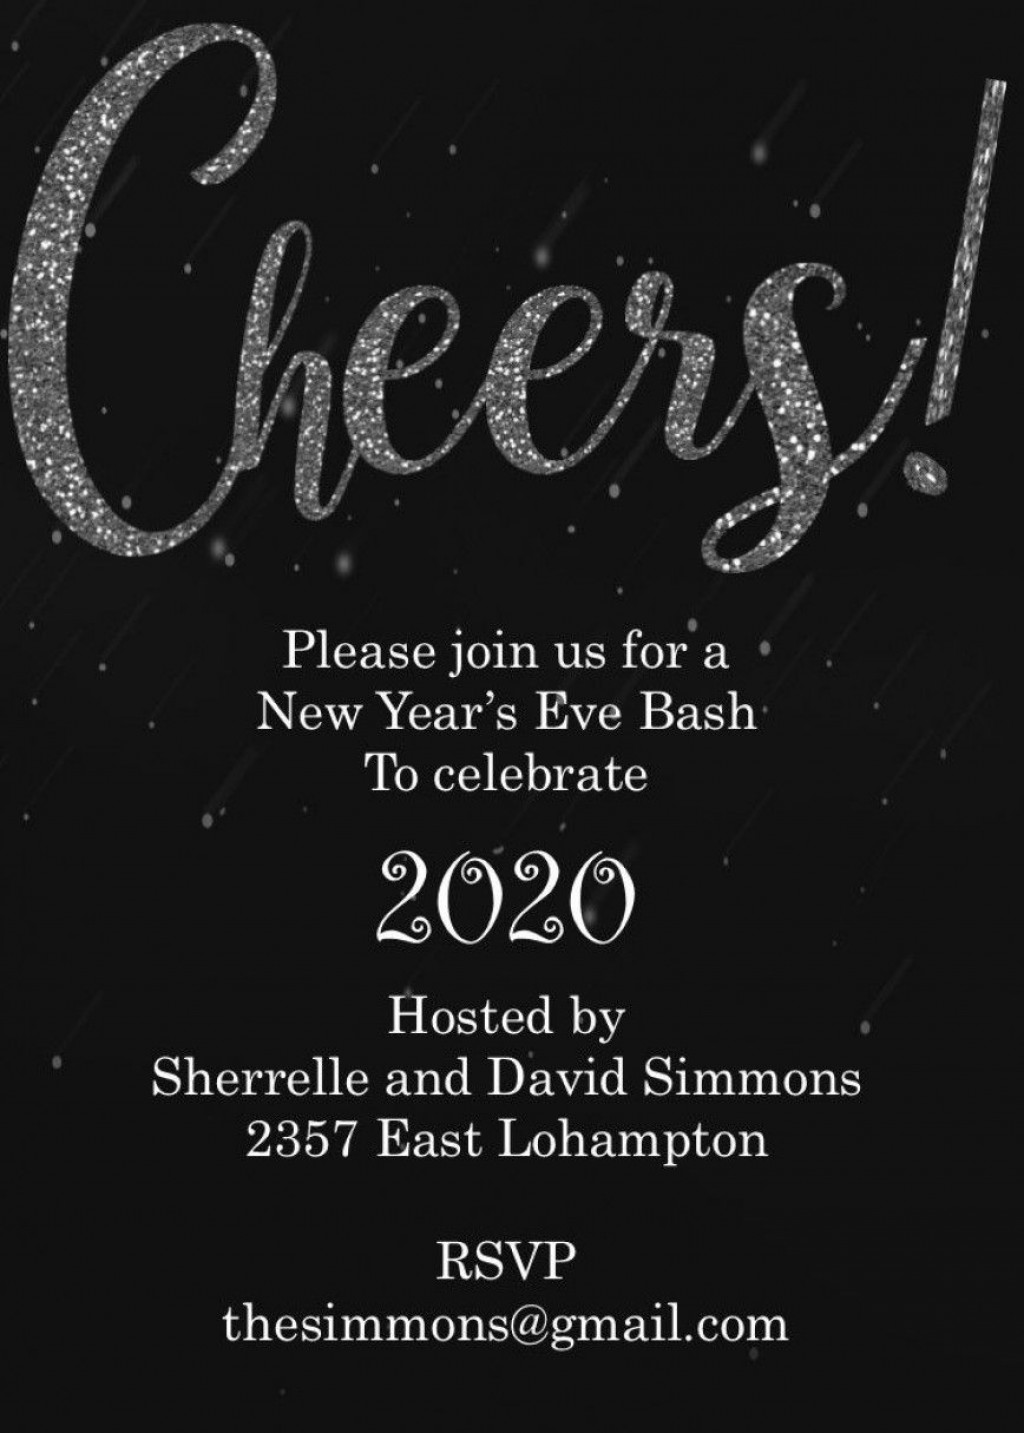 004 Formidable New Year Eve Invitation Template High Def  Party Free WordLarge